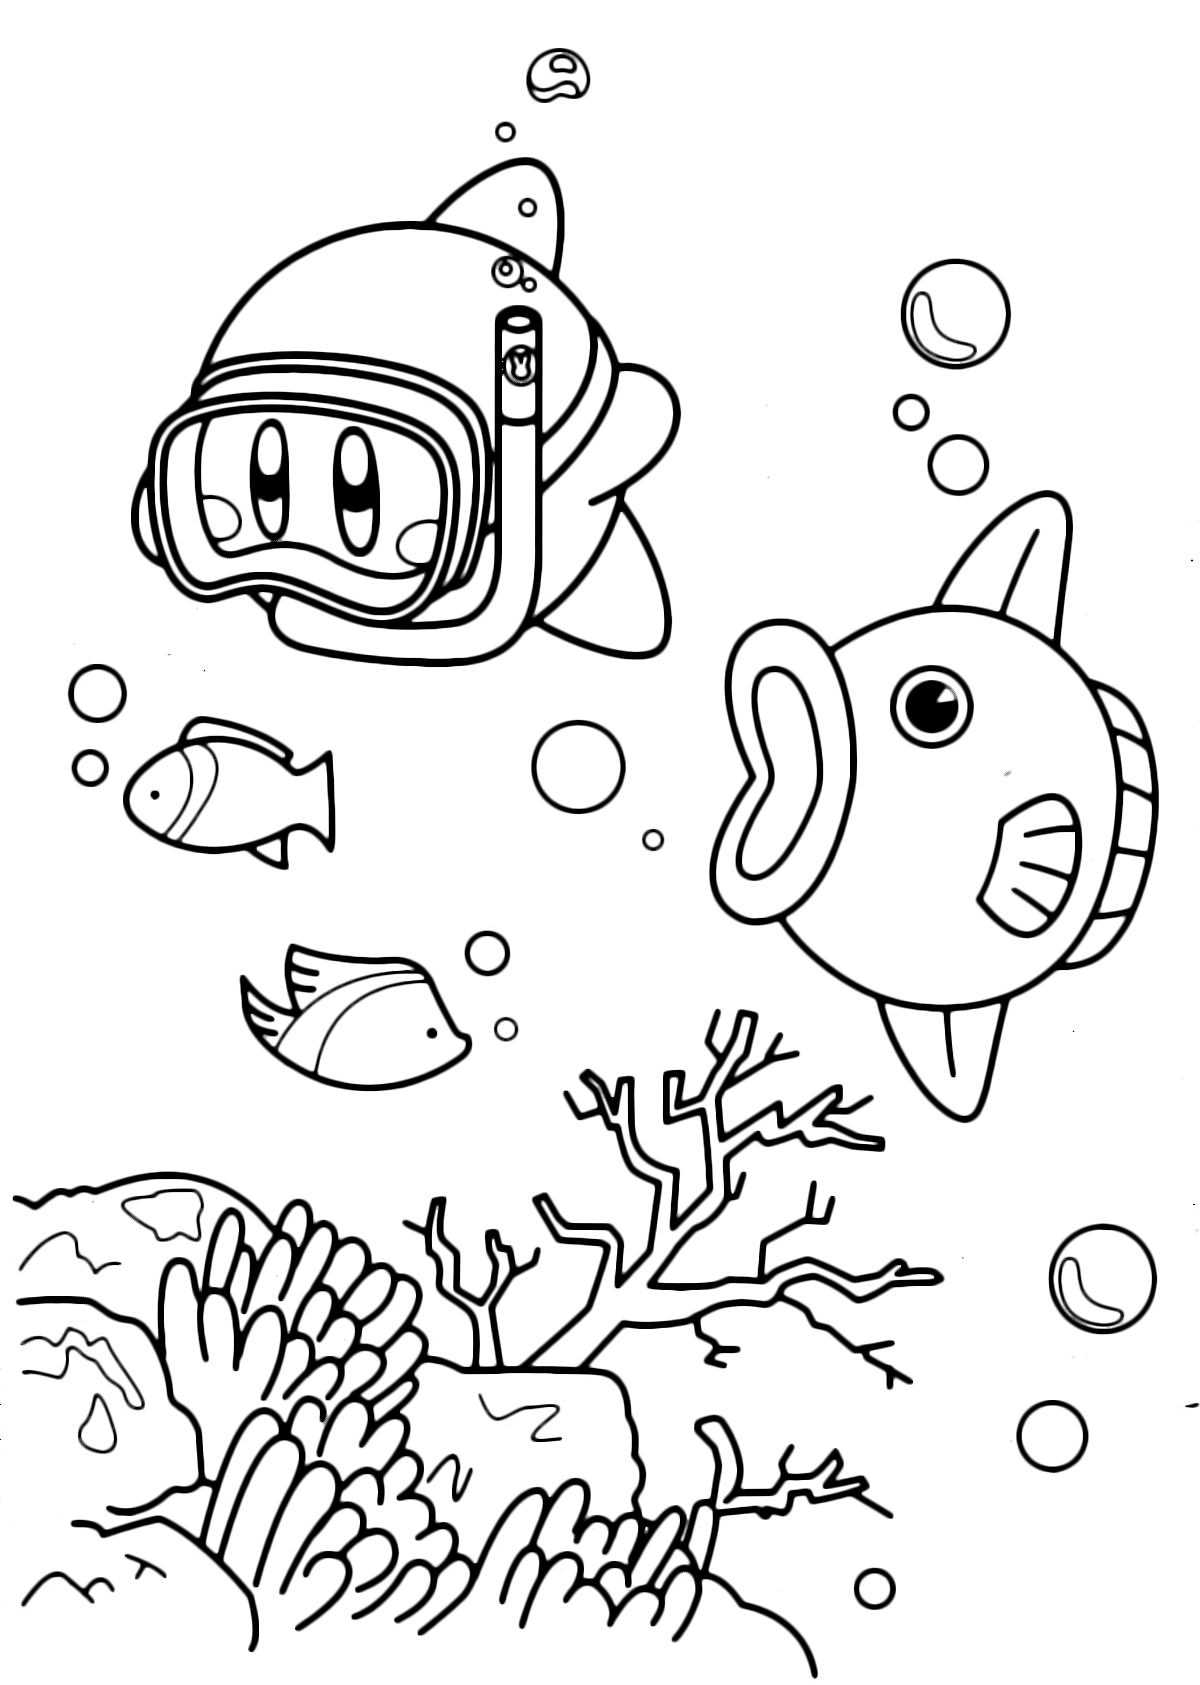 HD wallpapers mask coloring pages